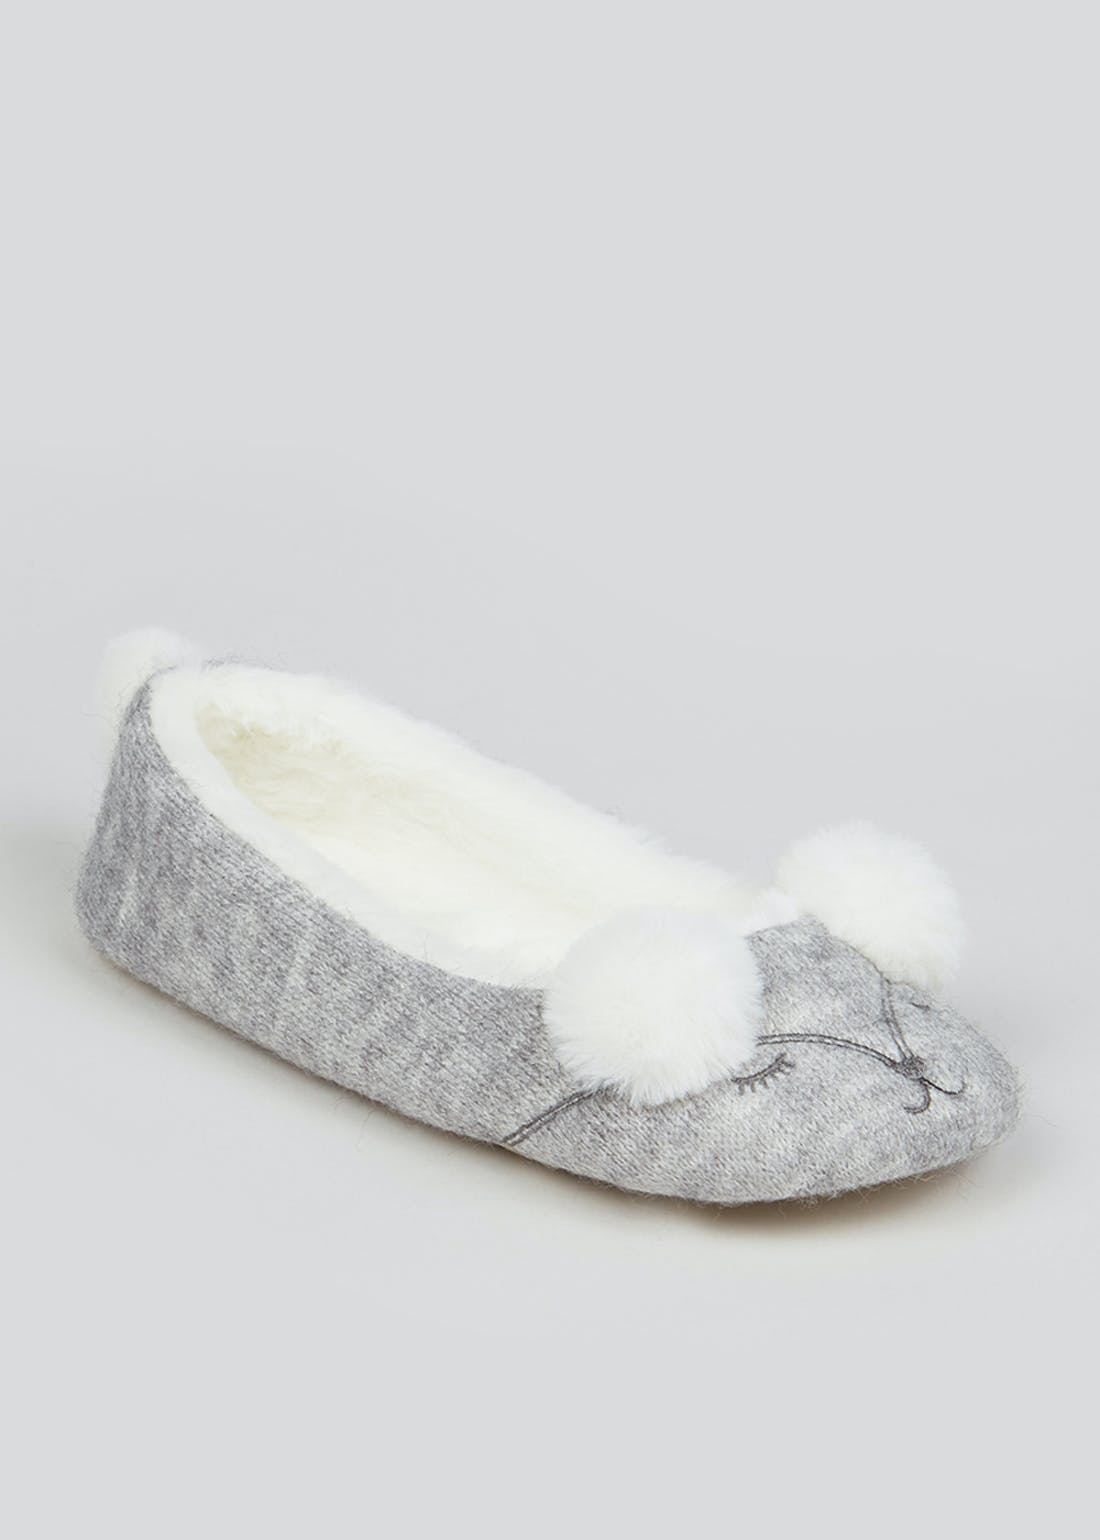 Grey Mouse Ballet Slippers